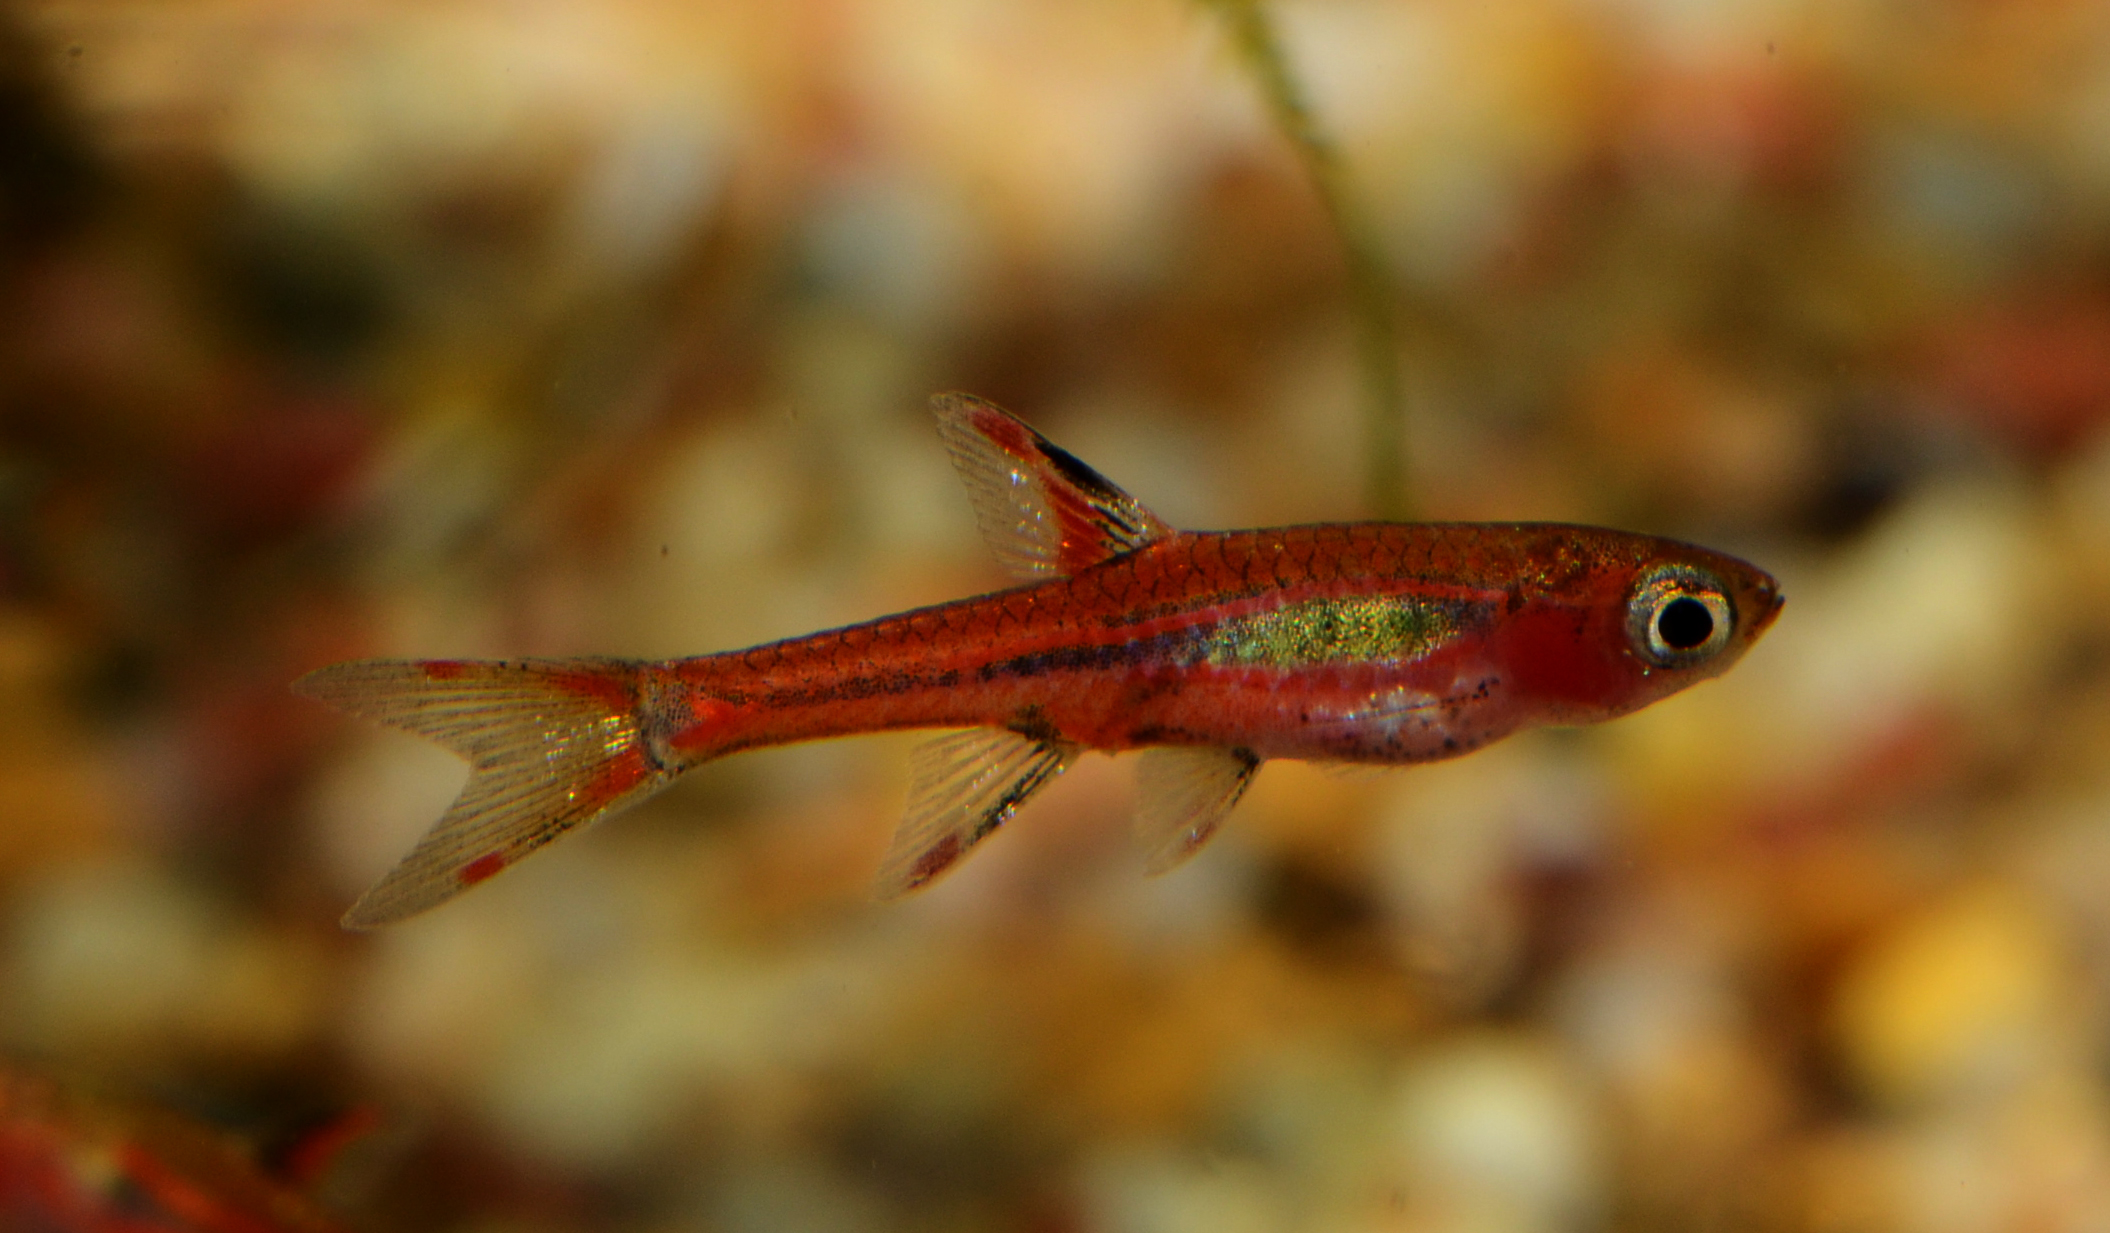 Chili rasbora - Invertebrates by Msjinkzd